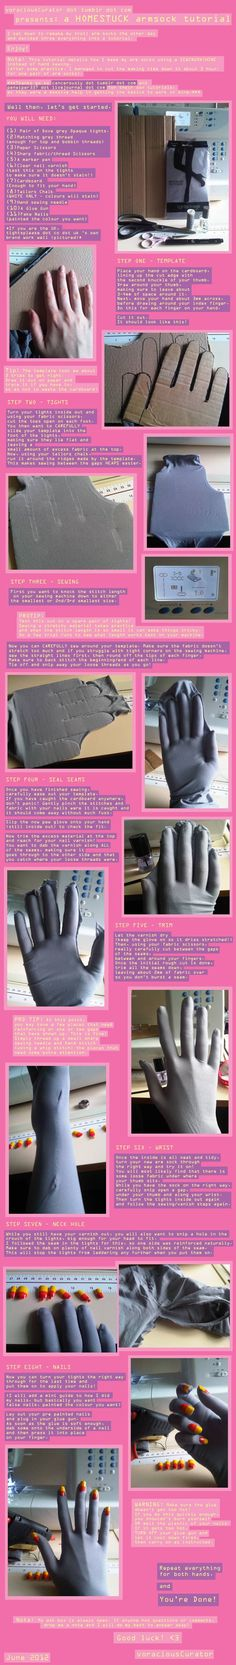 How to make an armsock for cosplay on a sewing machine!